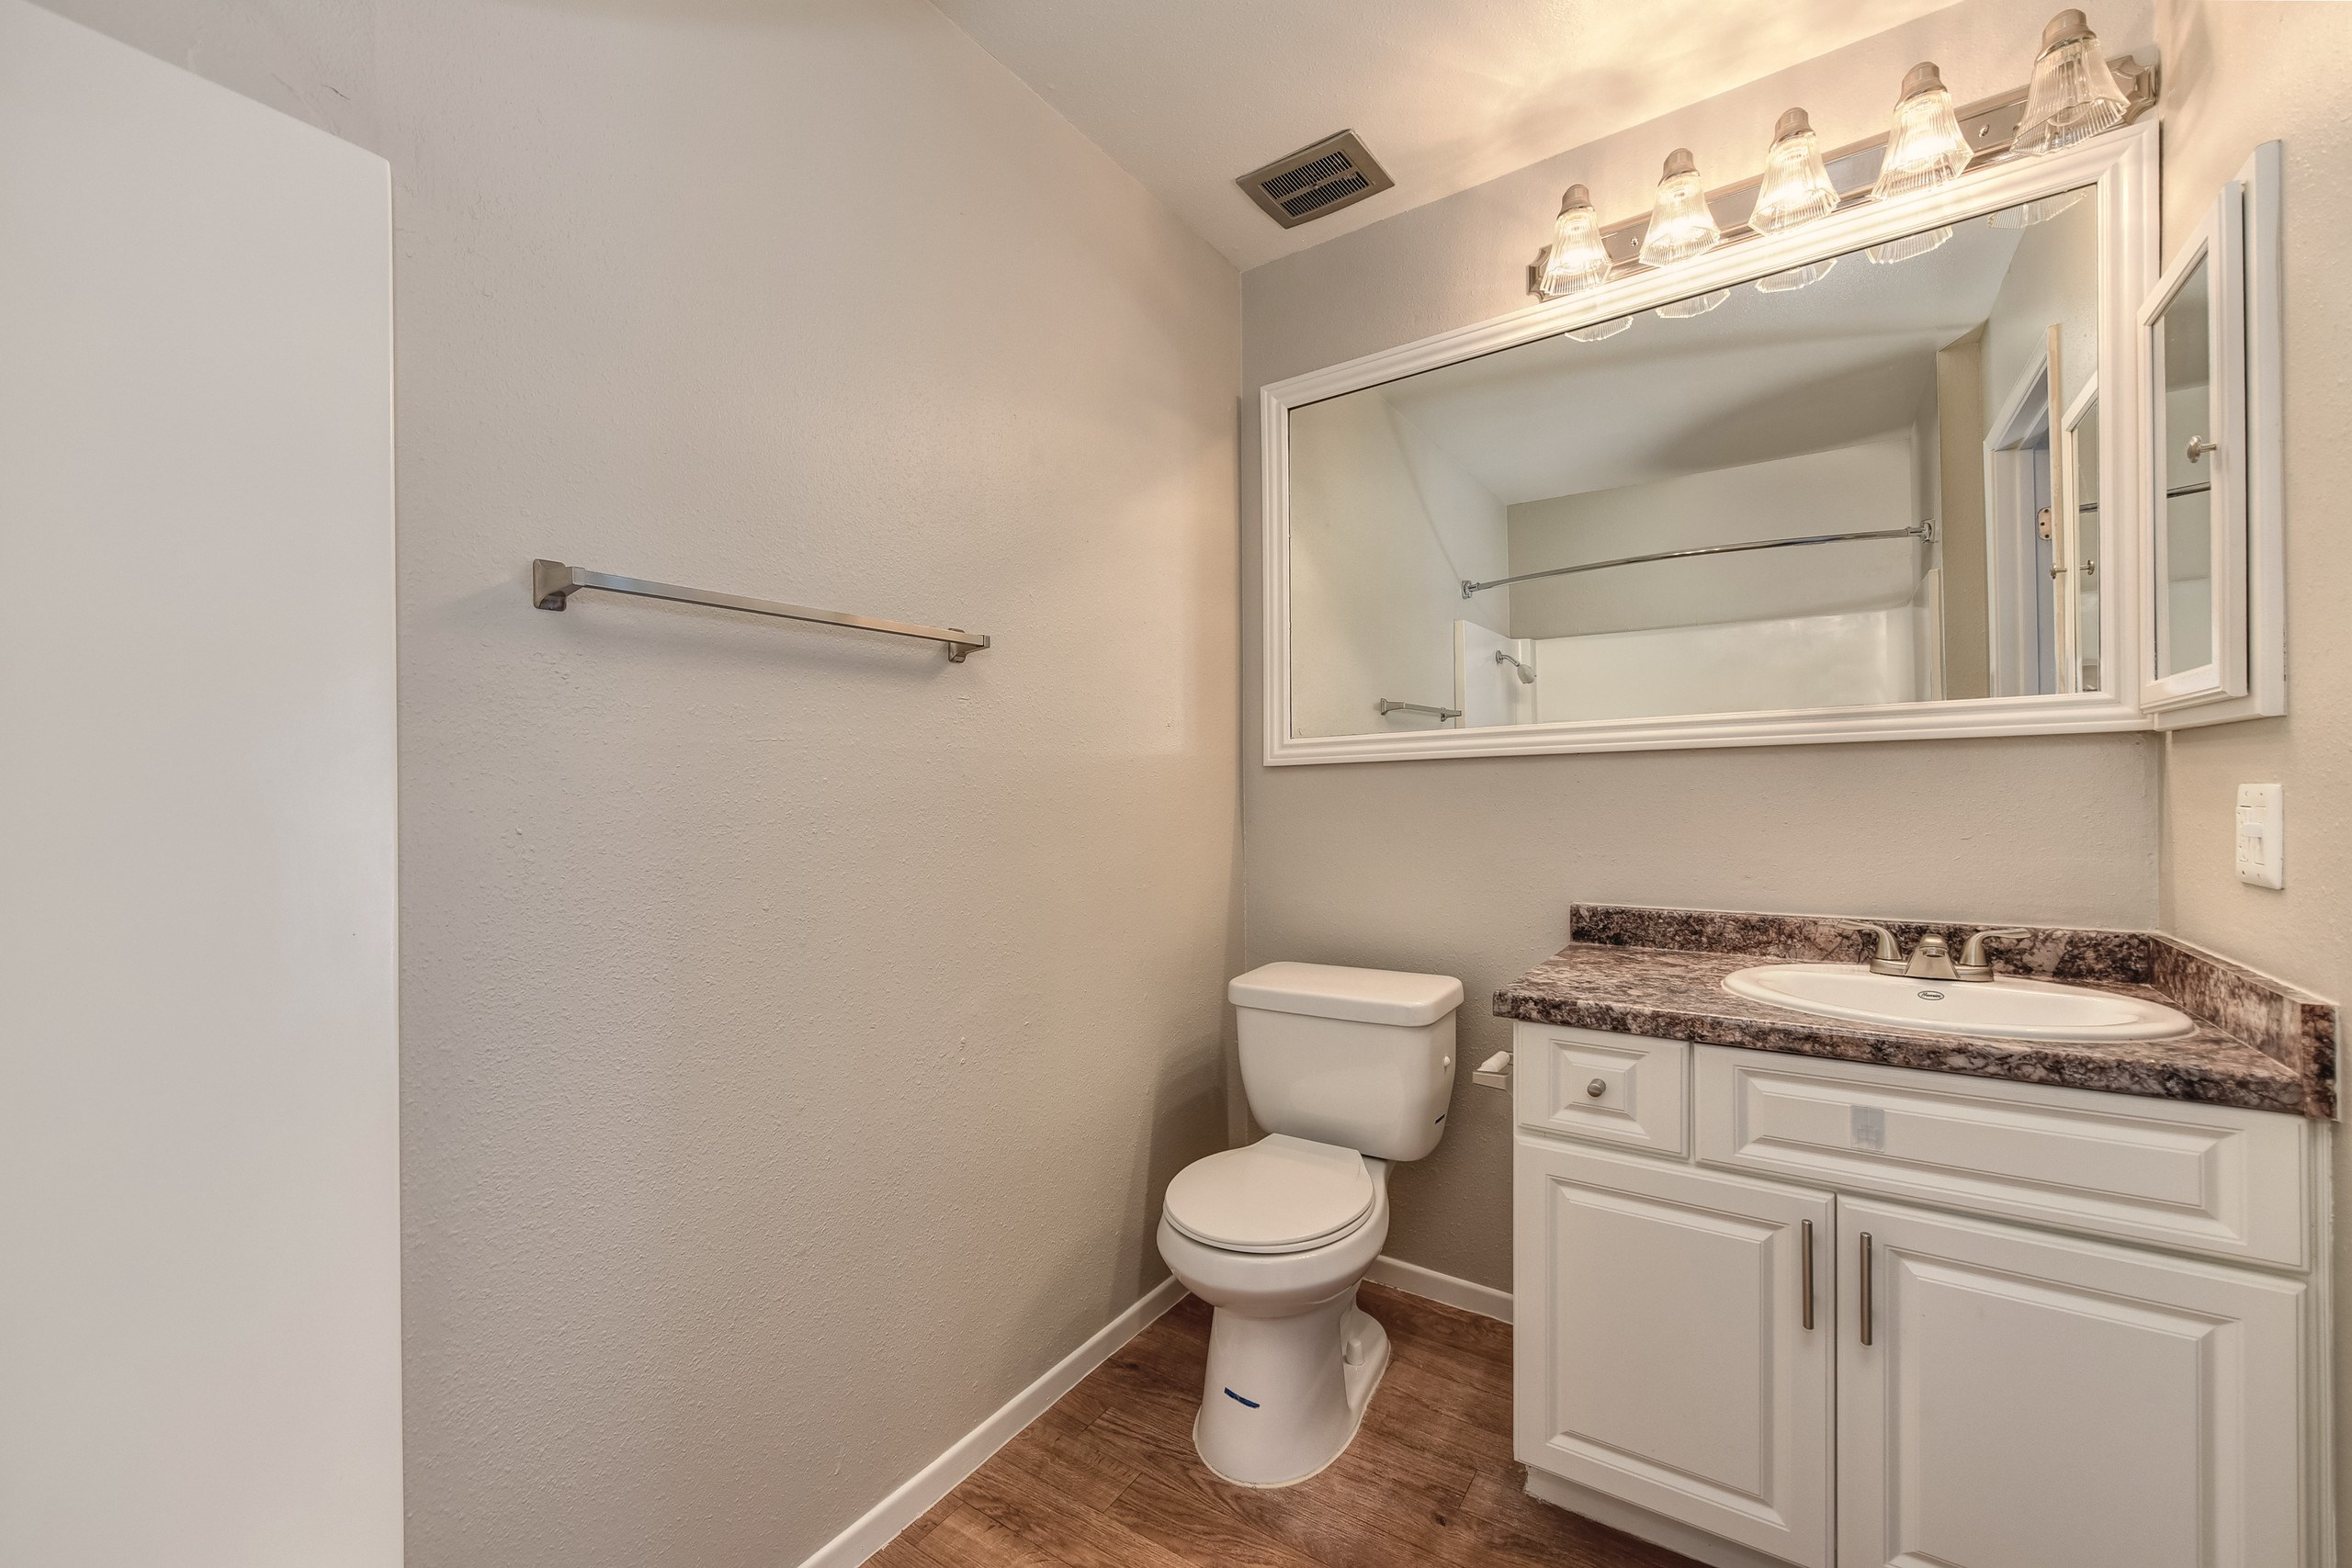 Large Master Bathroom with ample lighting and mirror